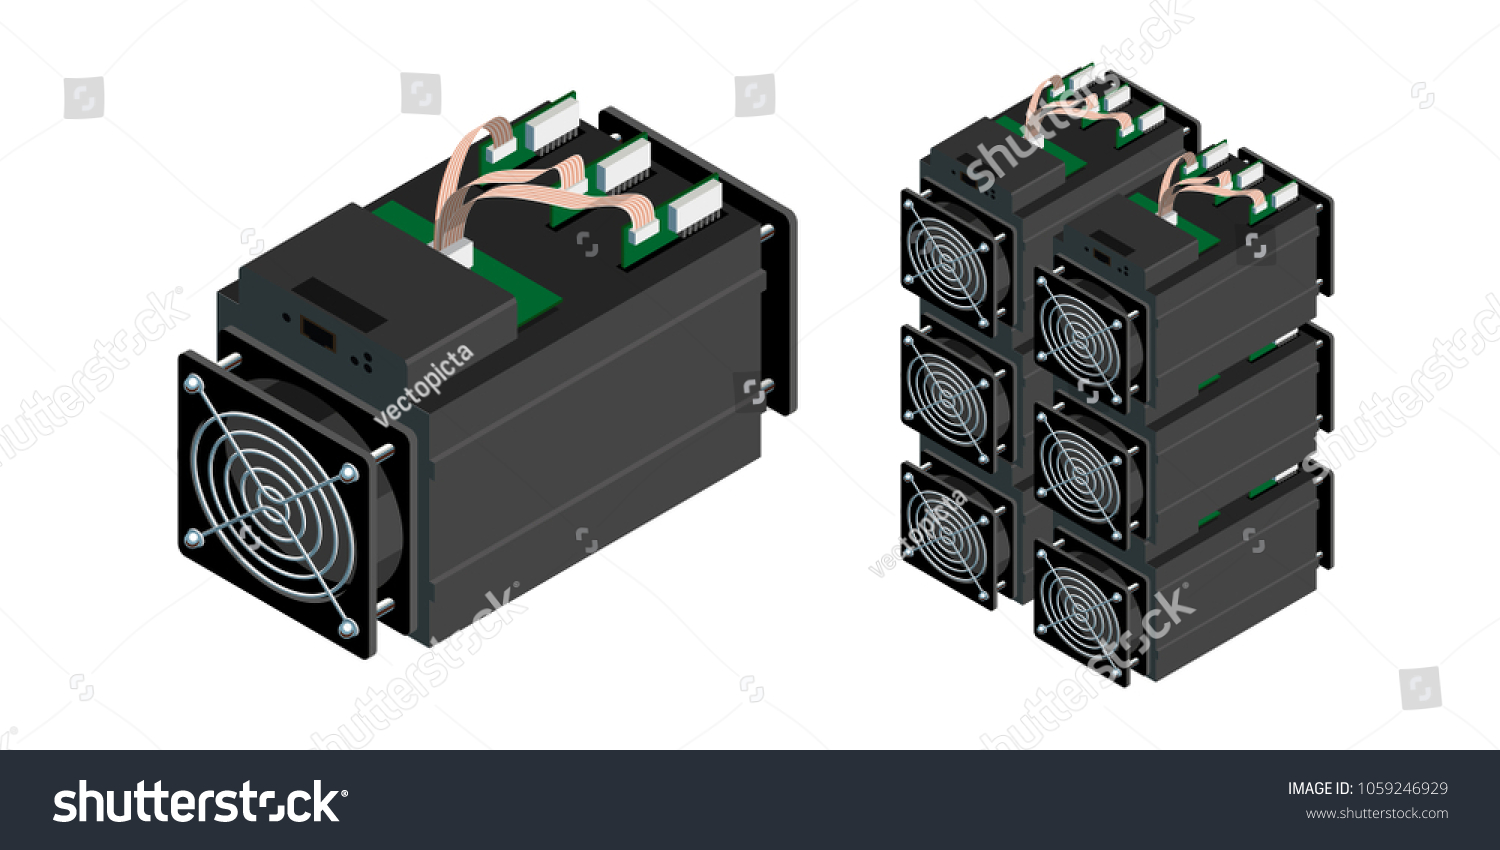 Mining Rig Cheap What Other Coins Can Asic Mine – Hacienda